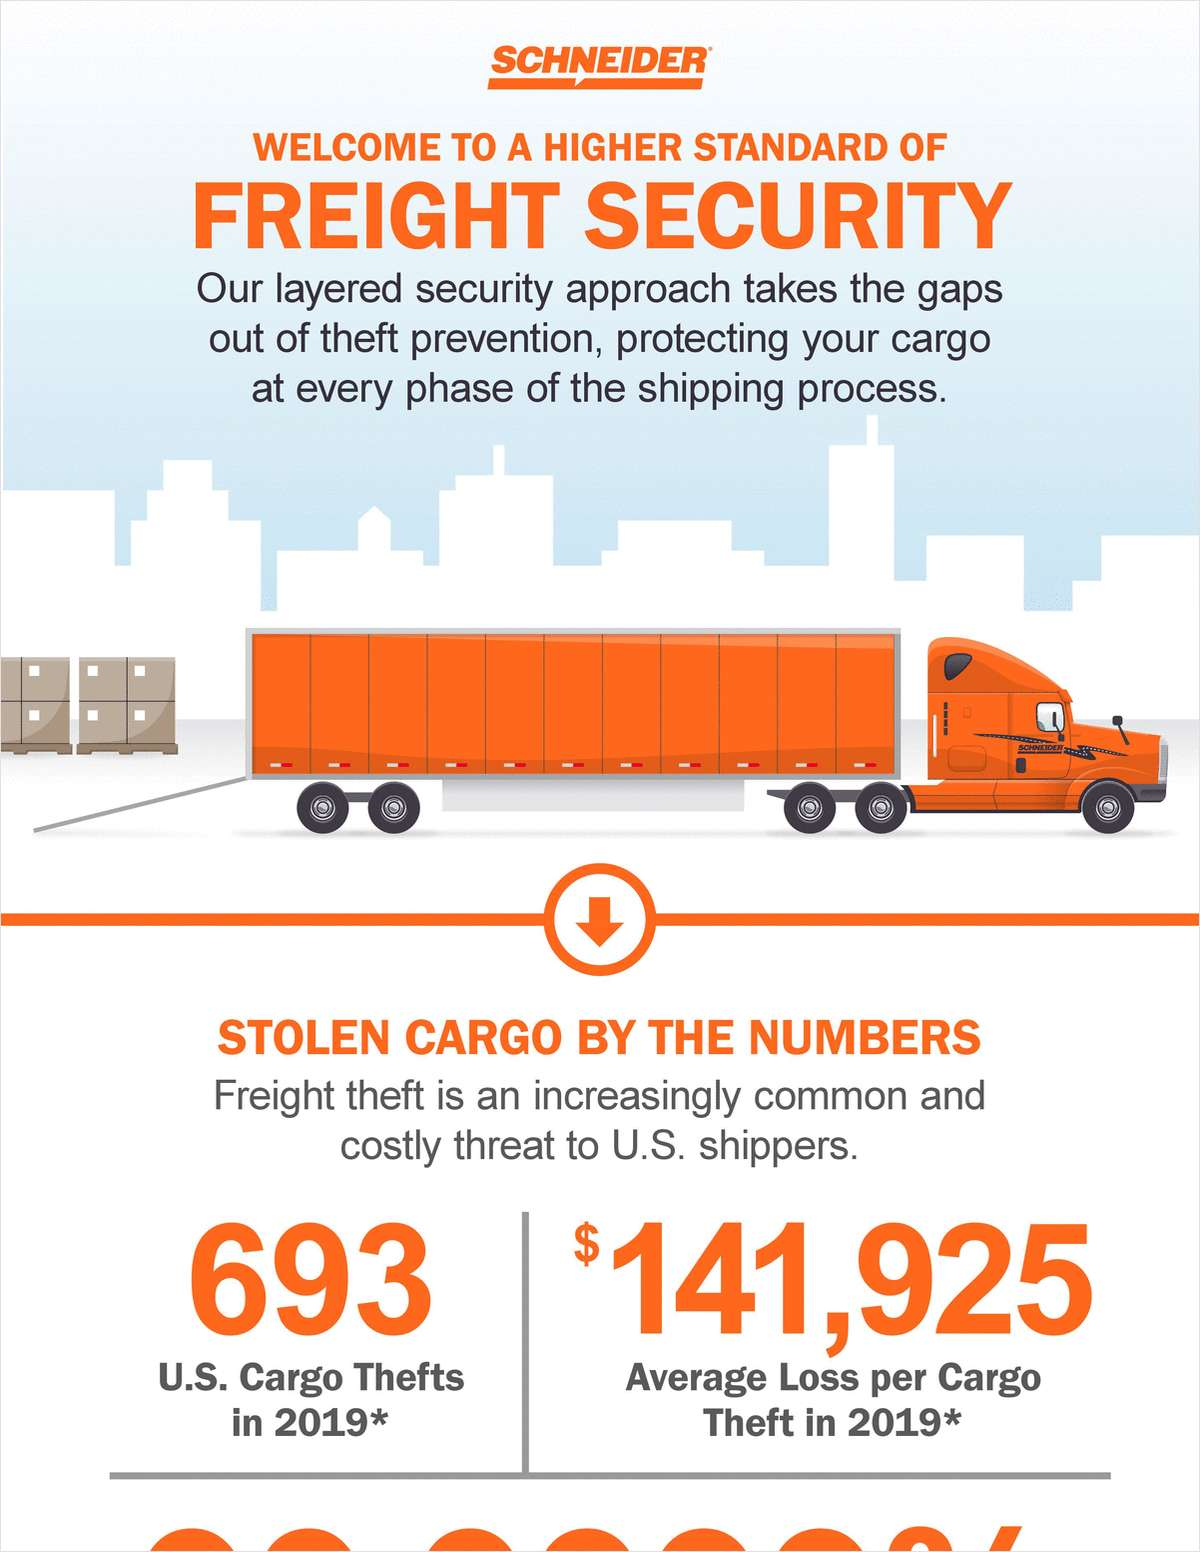 Tomorrow's Freight Security Here Today